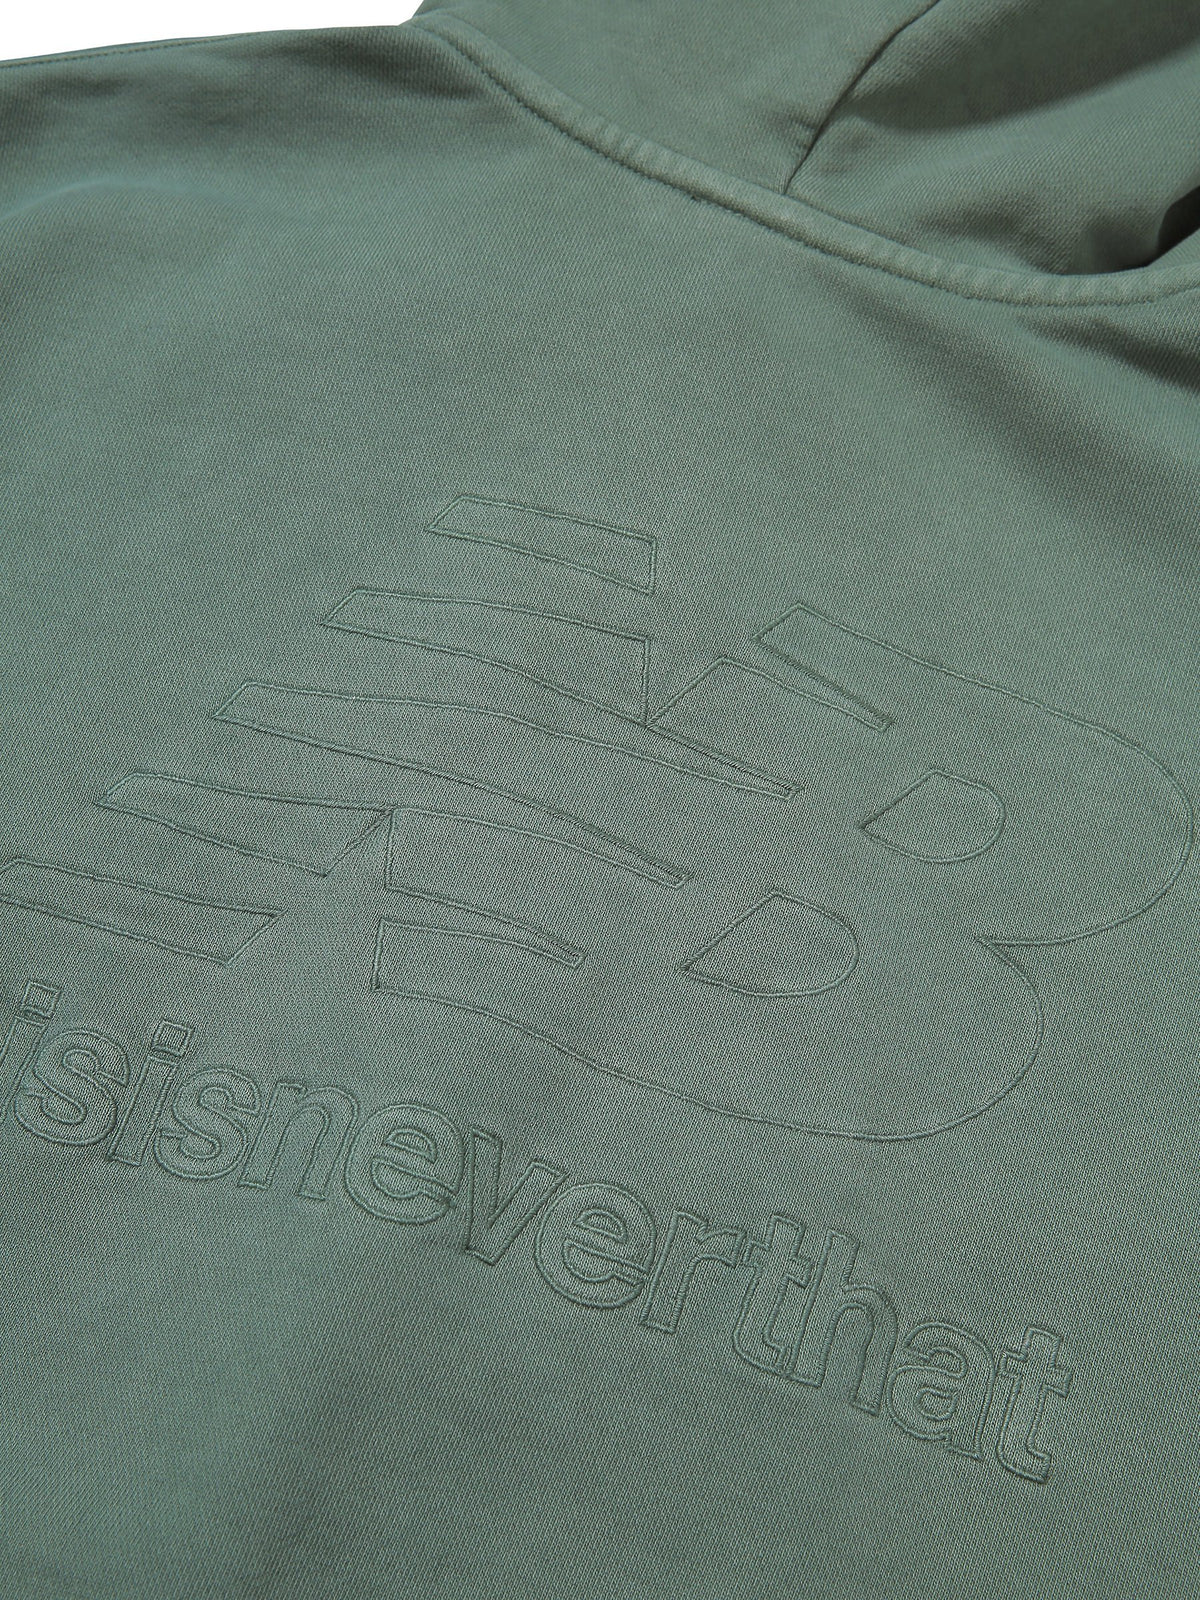 NB TNT ZIPUP SWEAT - thisisneverthat